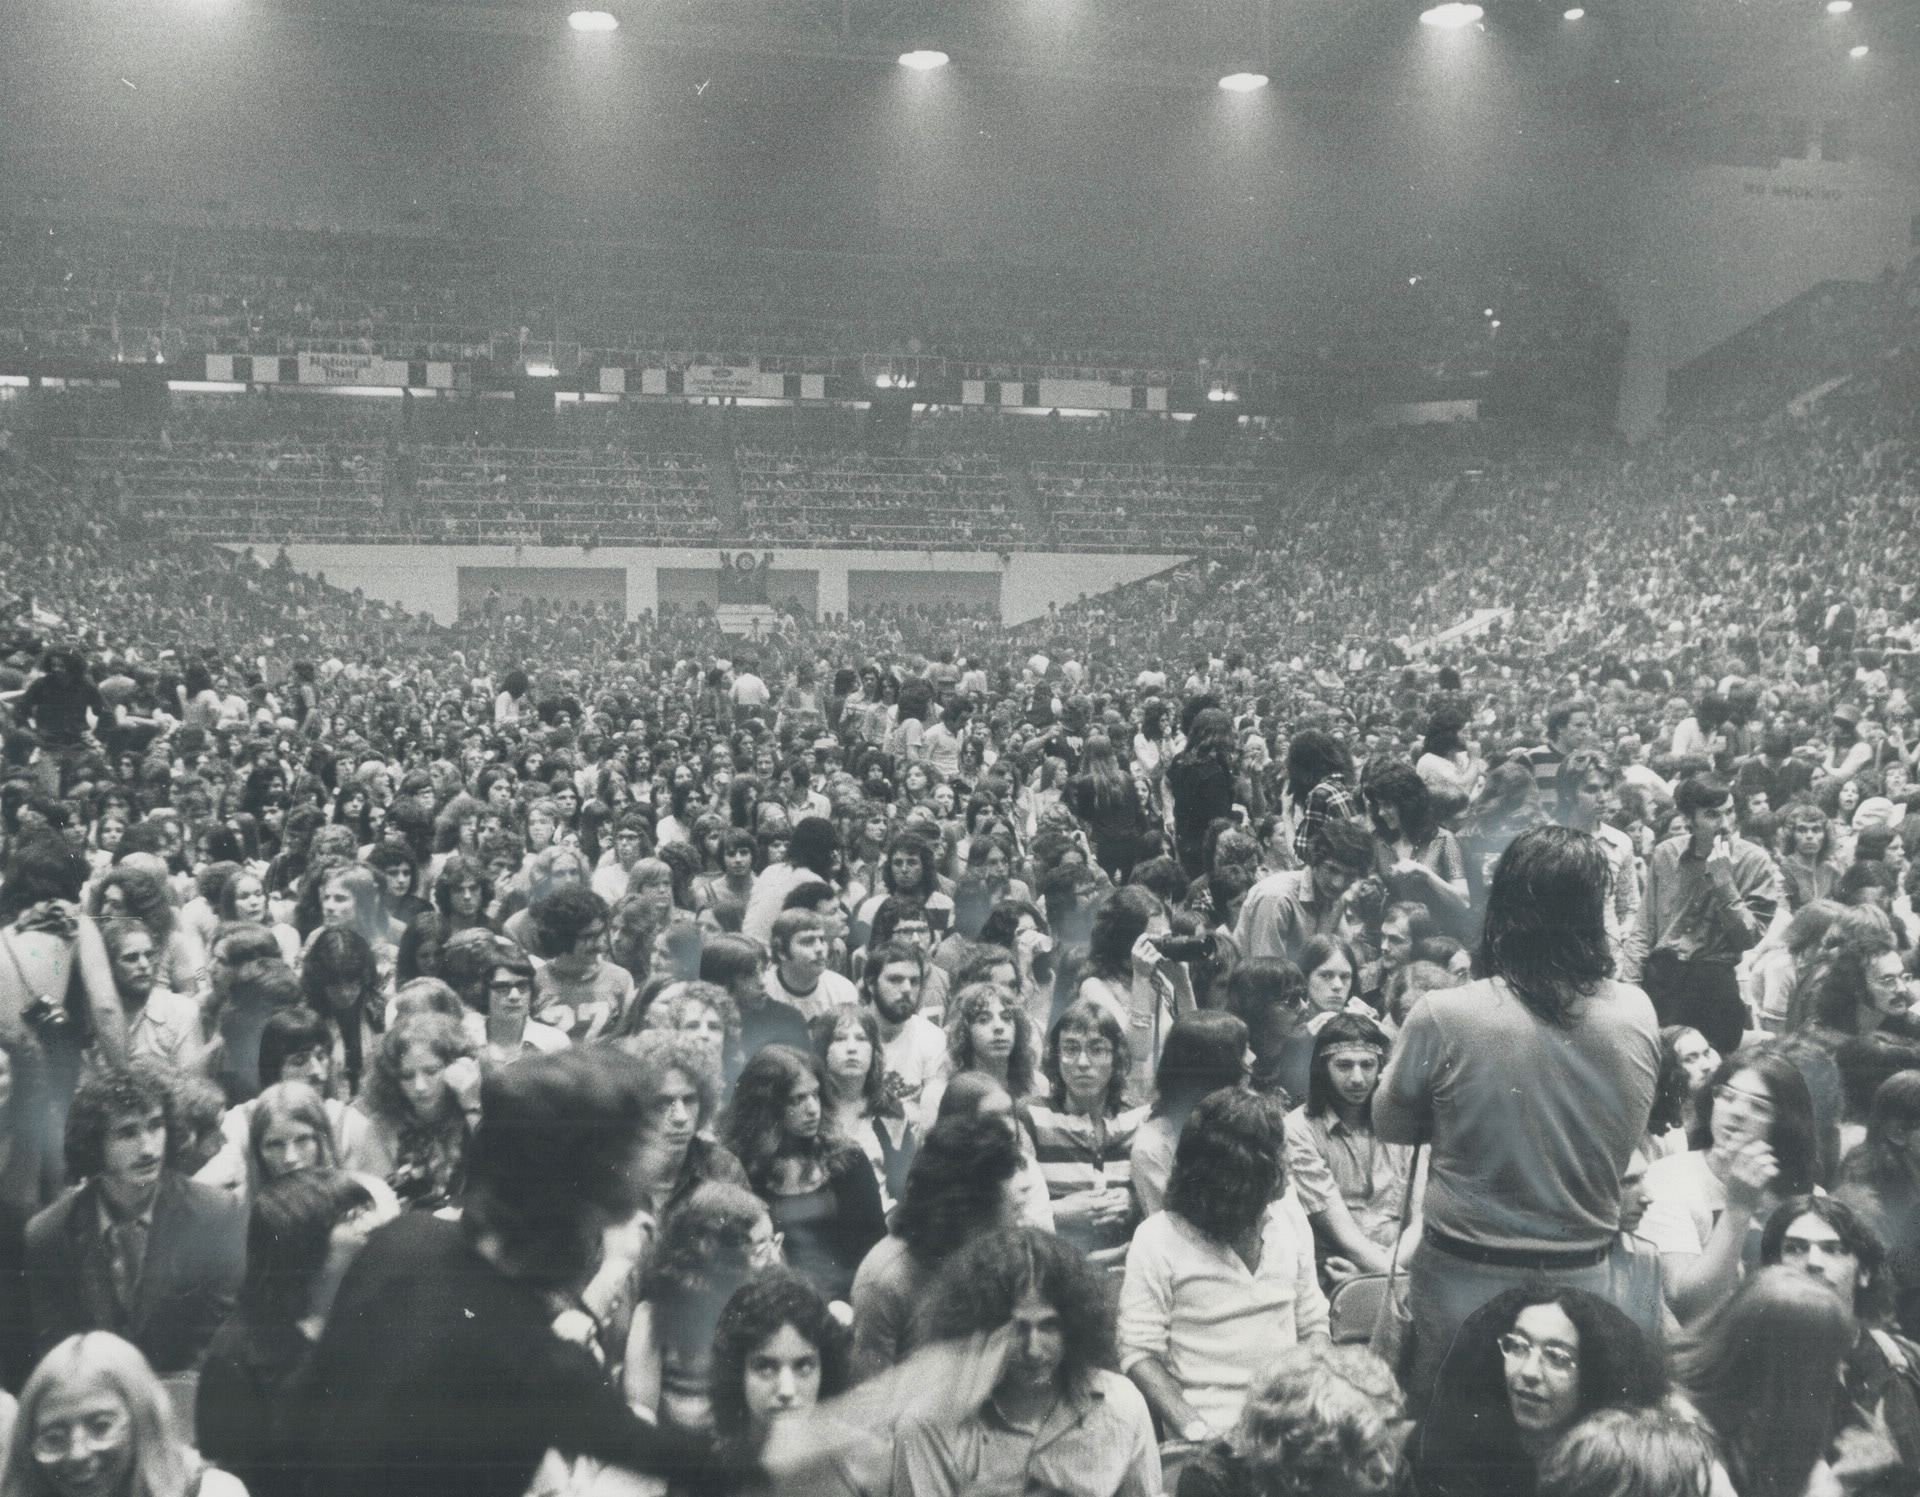 Thousands of people inside of an arena.